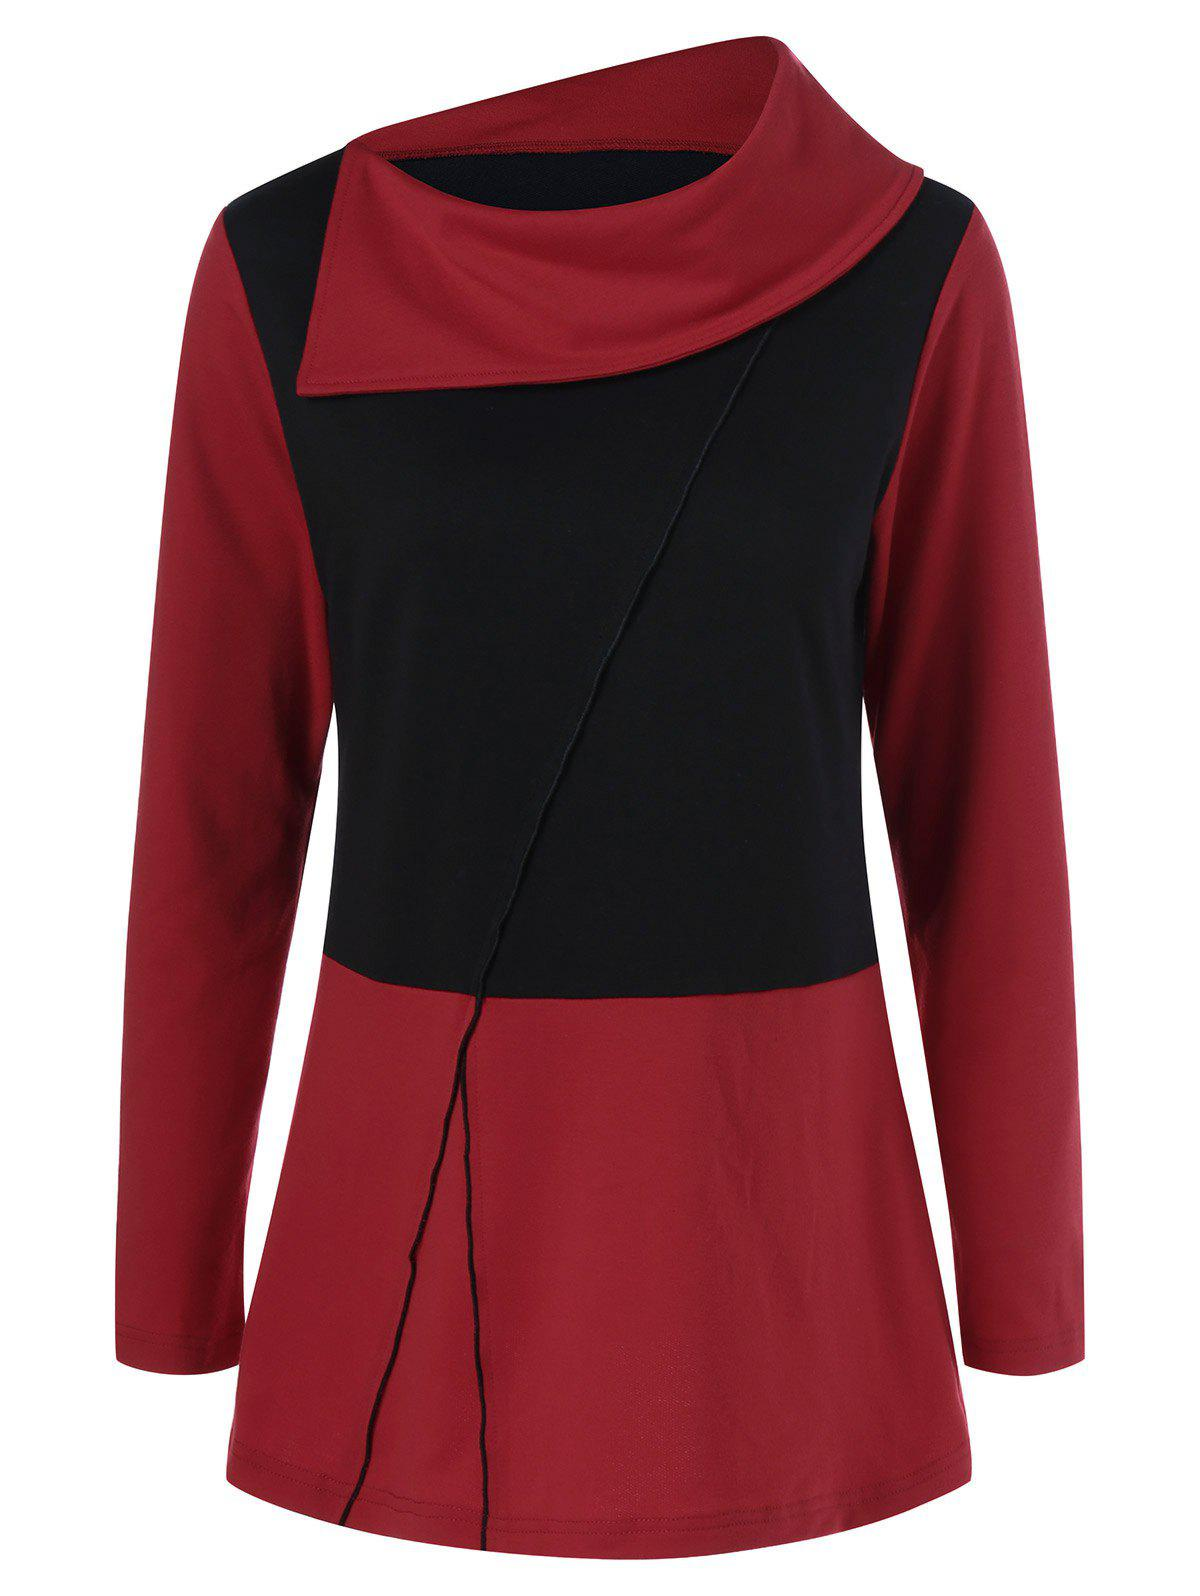 Side Collar T-Shirt - RED/BLACK M